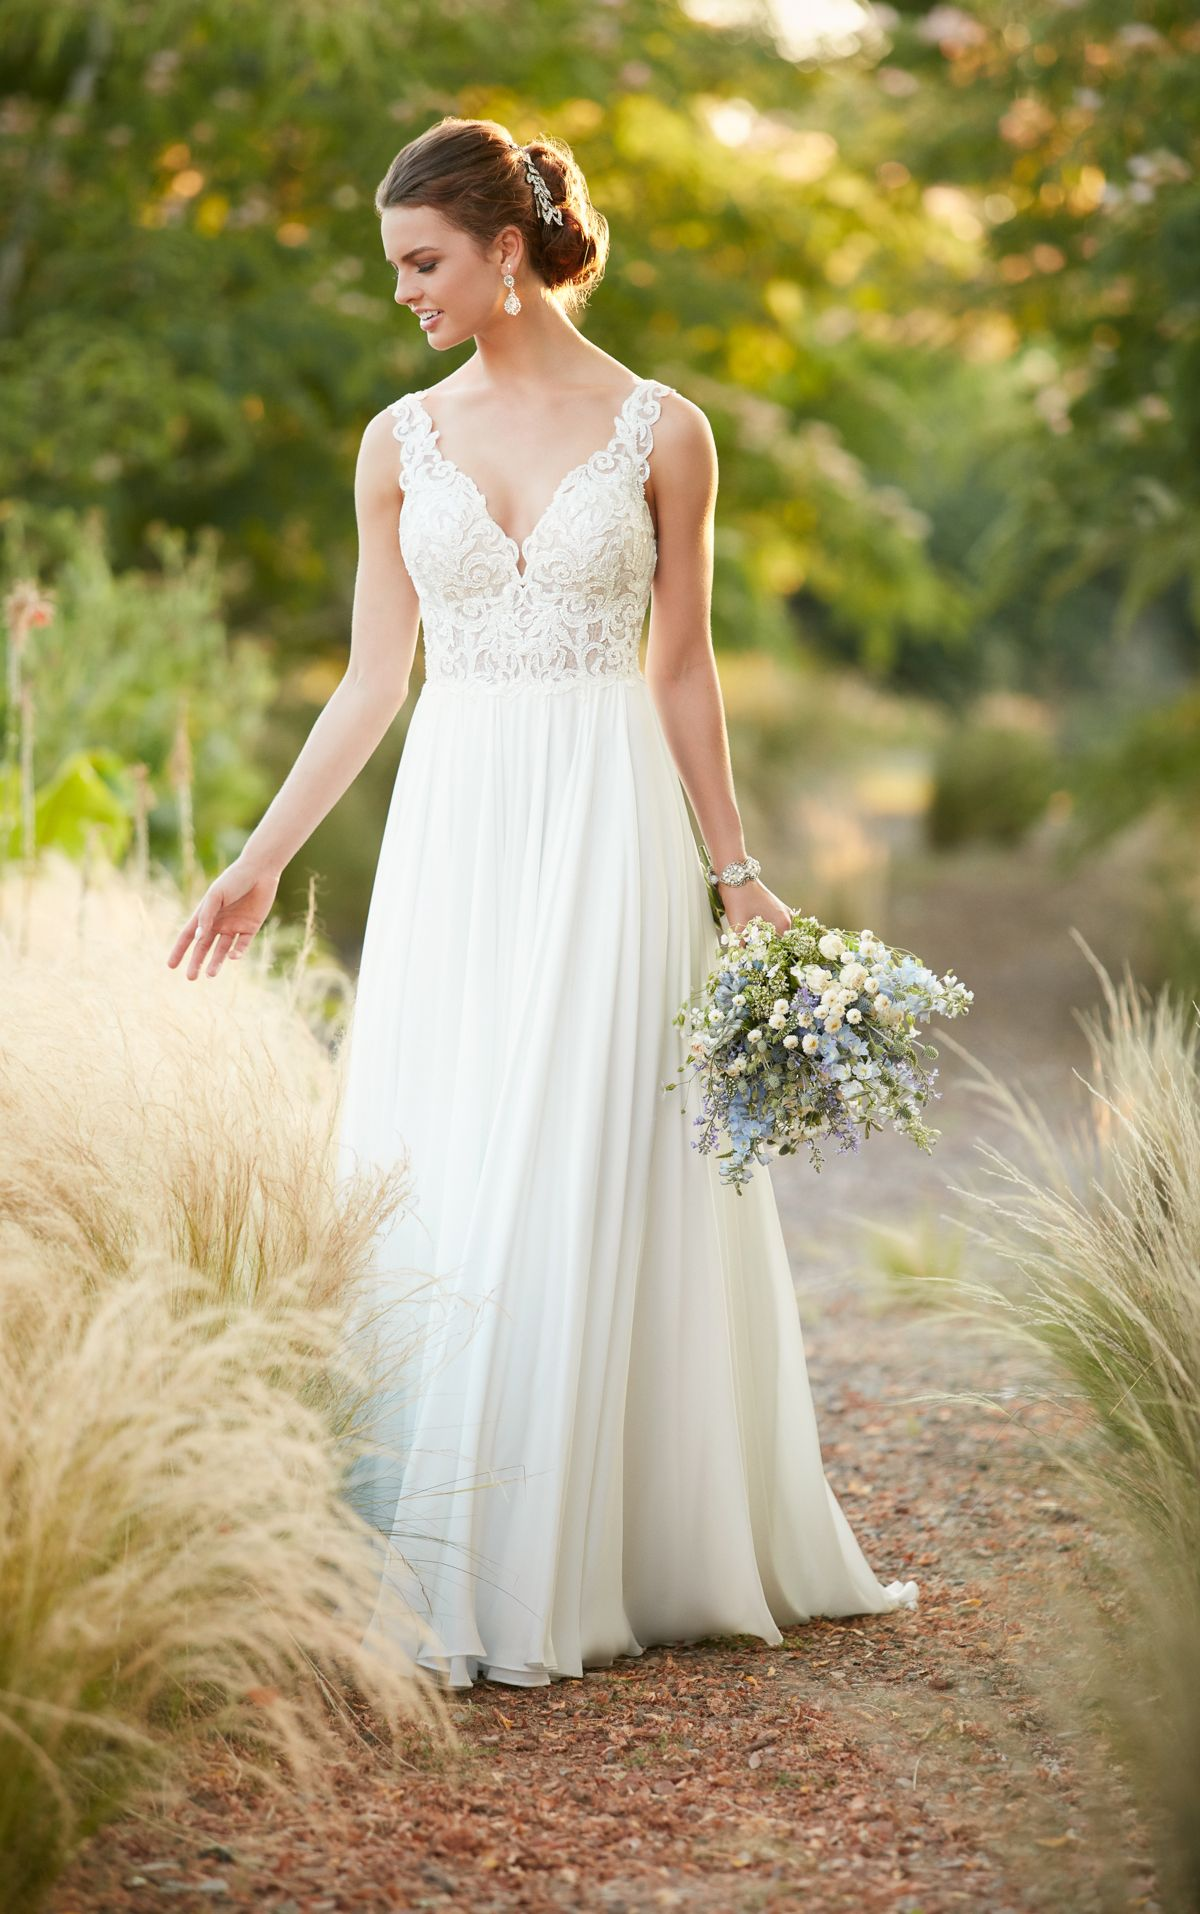 Boho-Chiffon-Brautkleid | Chiffon wedding gowns, Lace bodice and Gowns